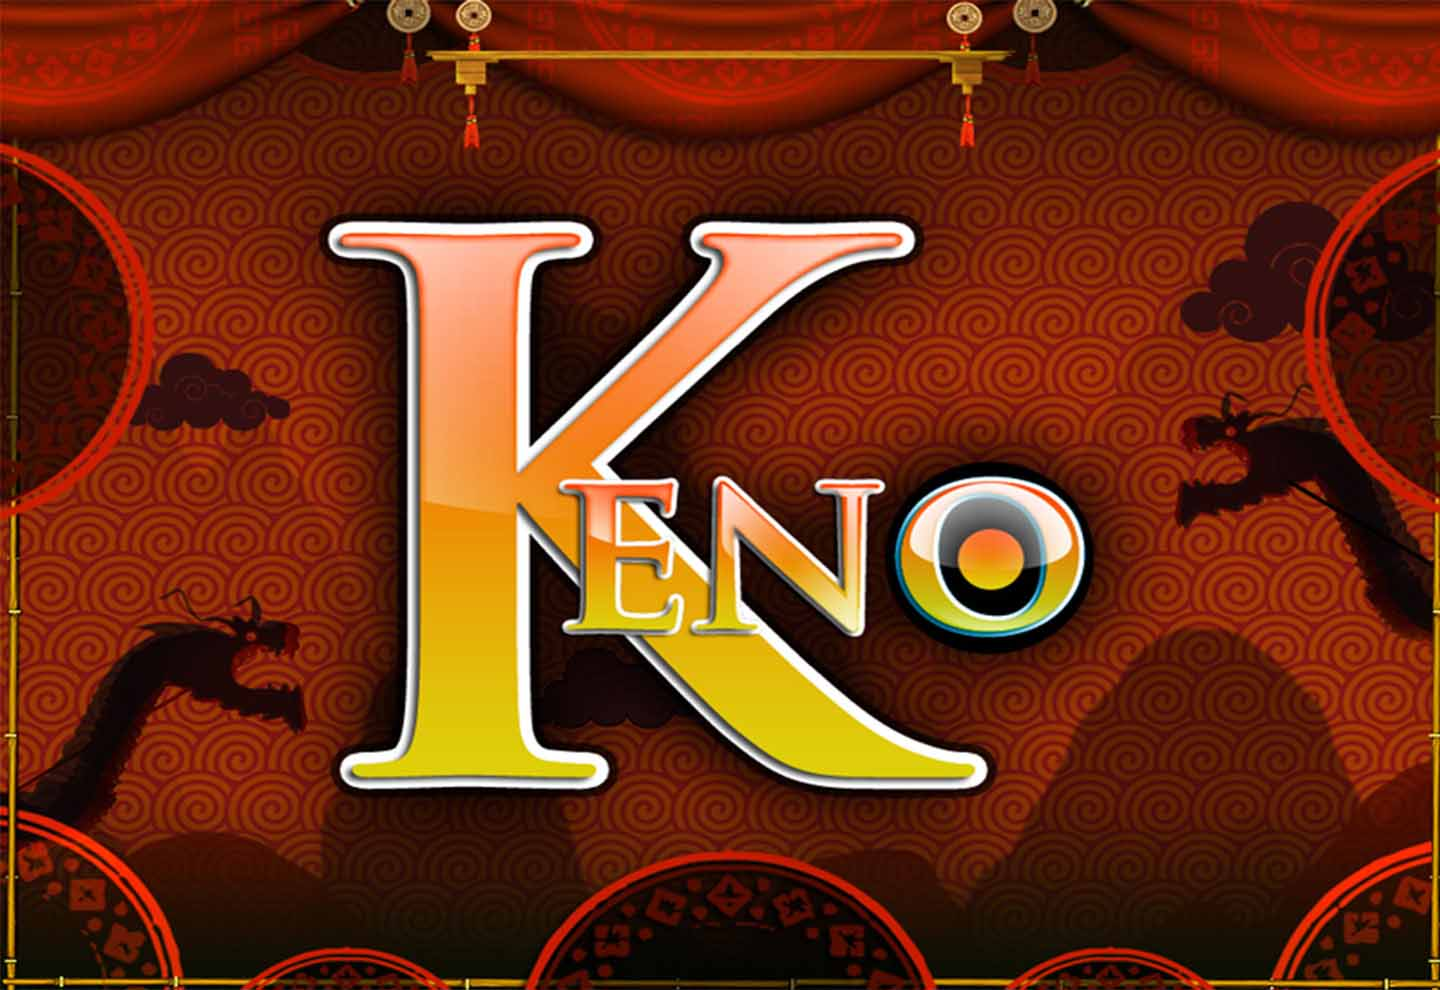 Play Keno at Grand Fortune casino